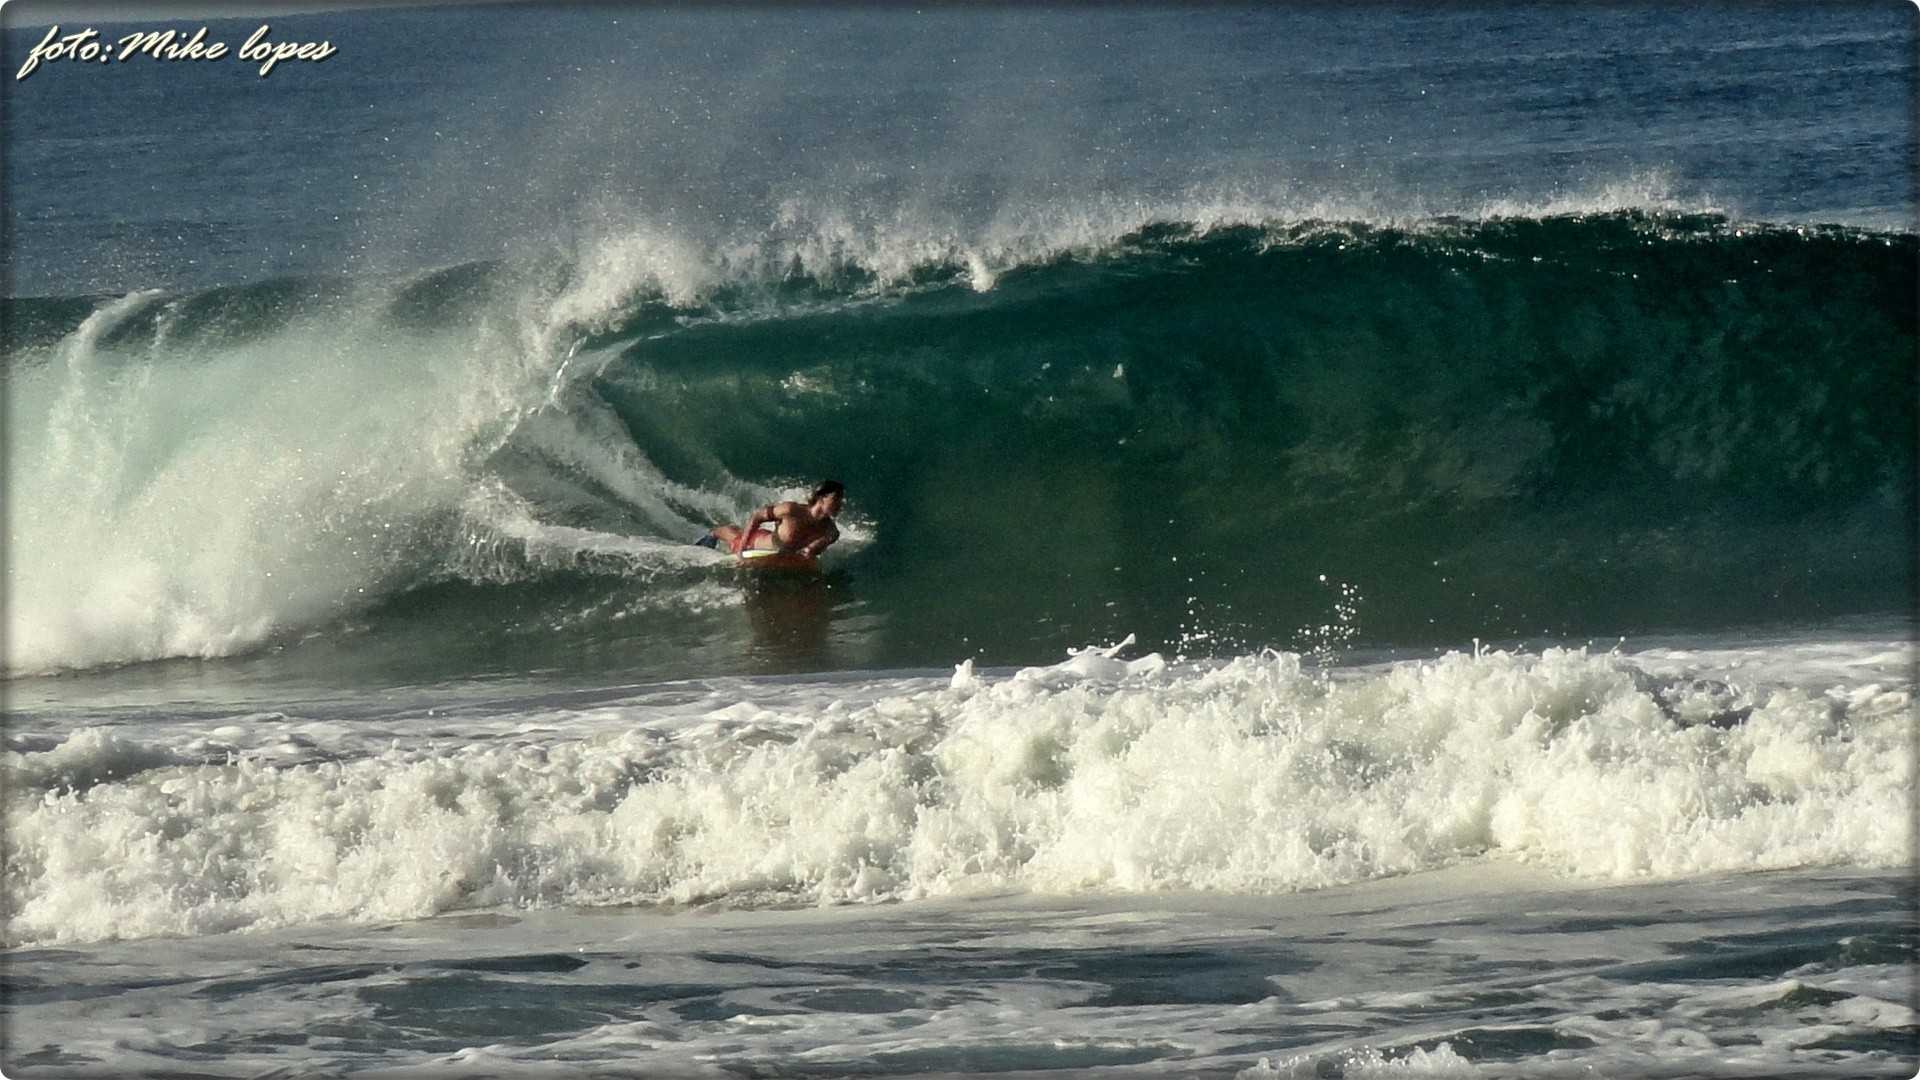 Mike Lopes's photo of Puerto Escondido